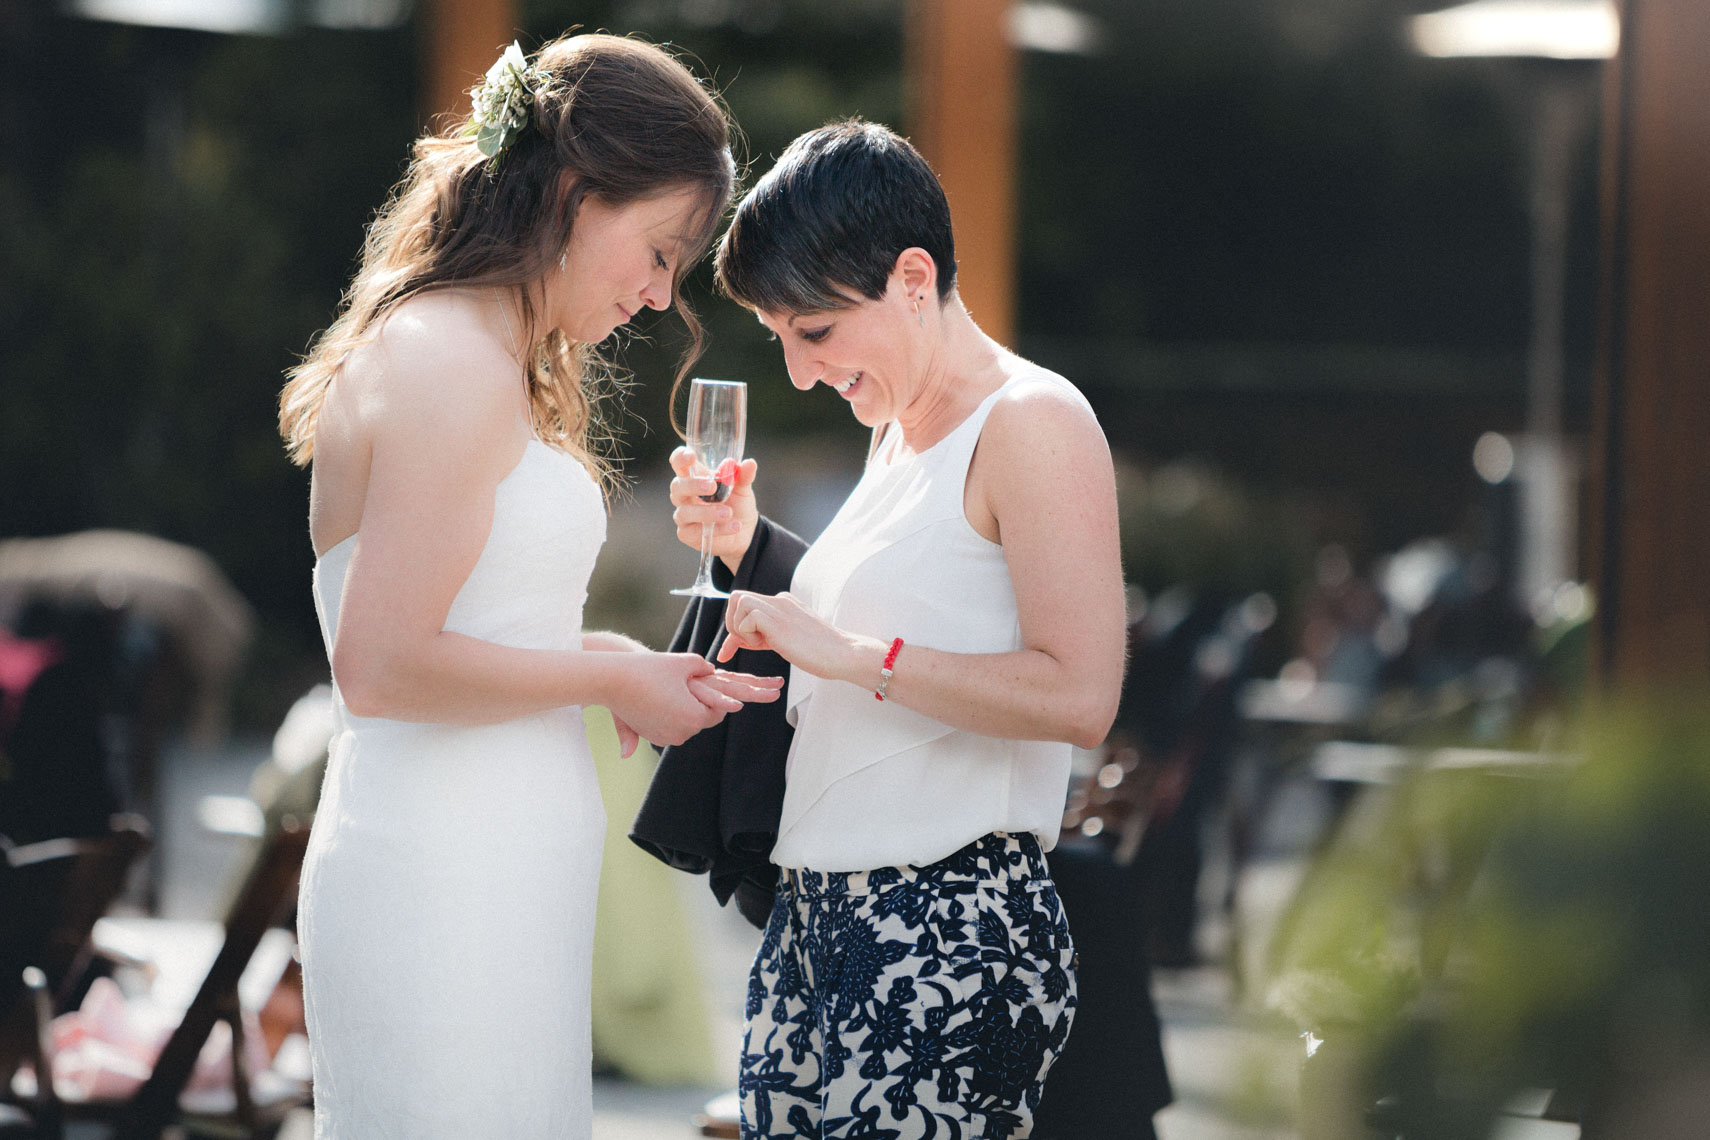 Bride chats with guests after ceremony at the SLCC venue in Whistler